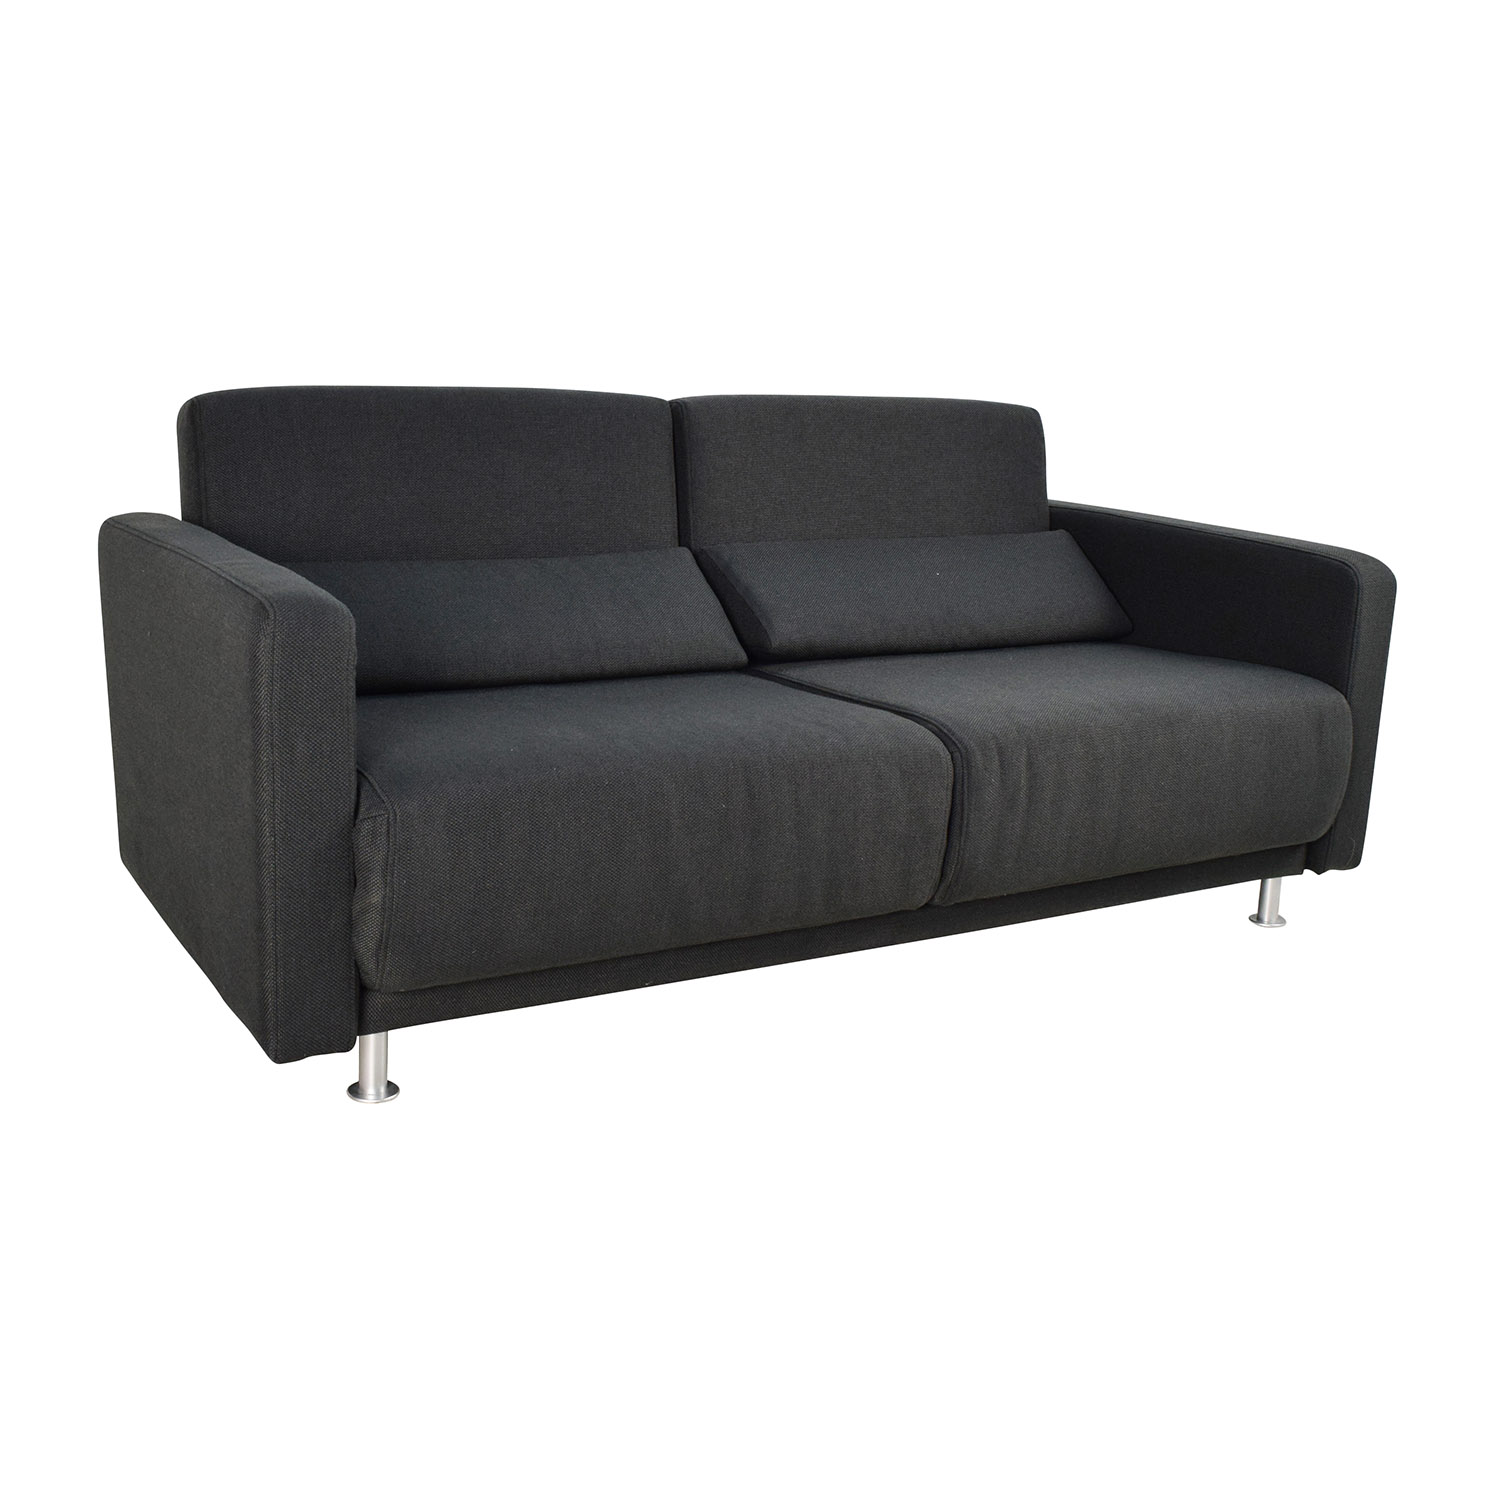 67 off boconcept boconcept melo 2 reclining sofa sofas. Black Bedroom Furniture Sets. Home Design Ideas